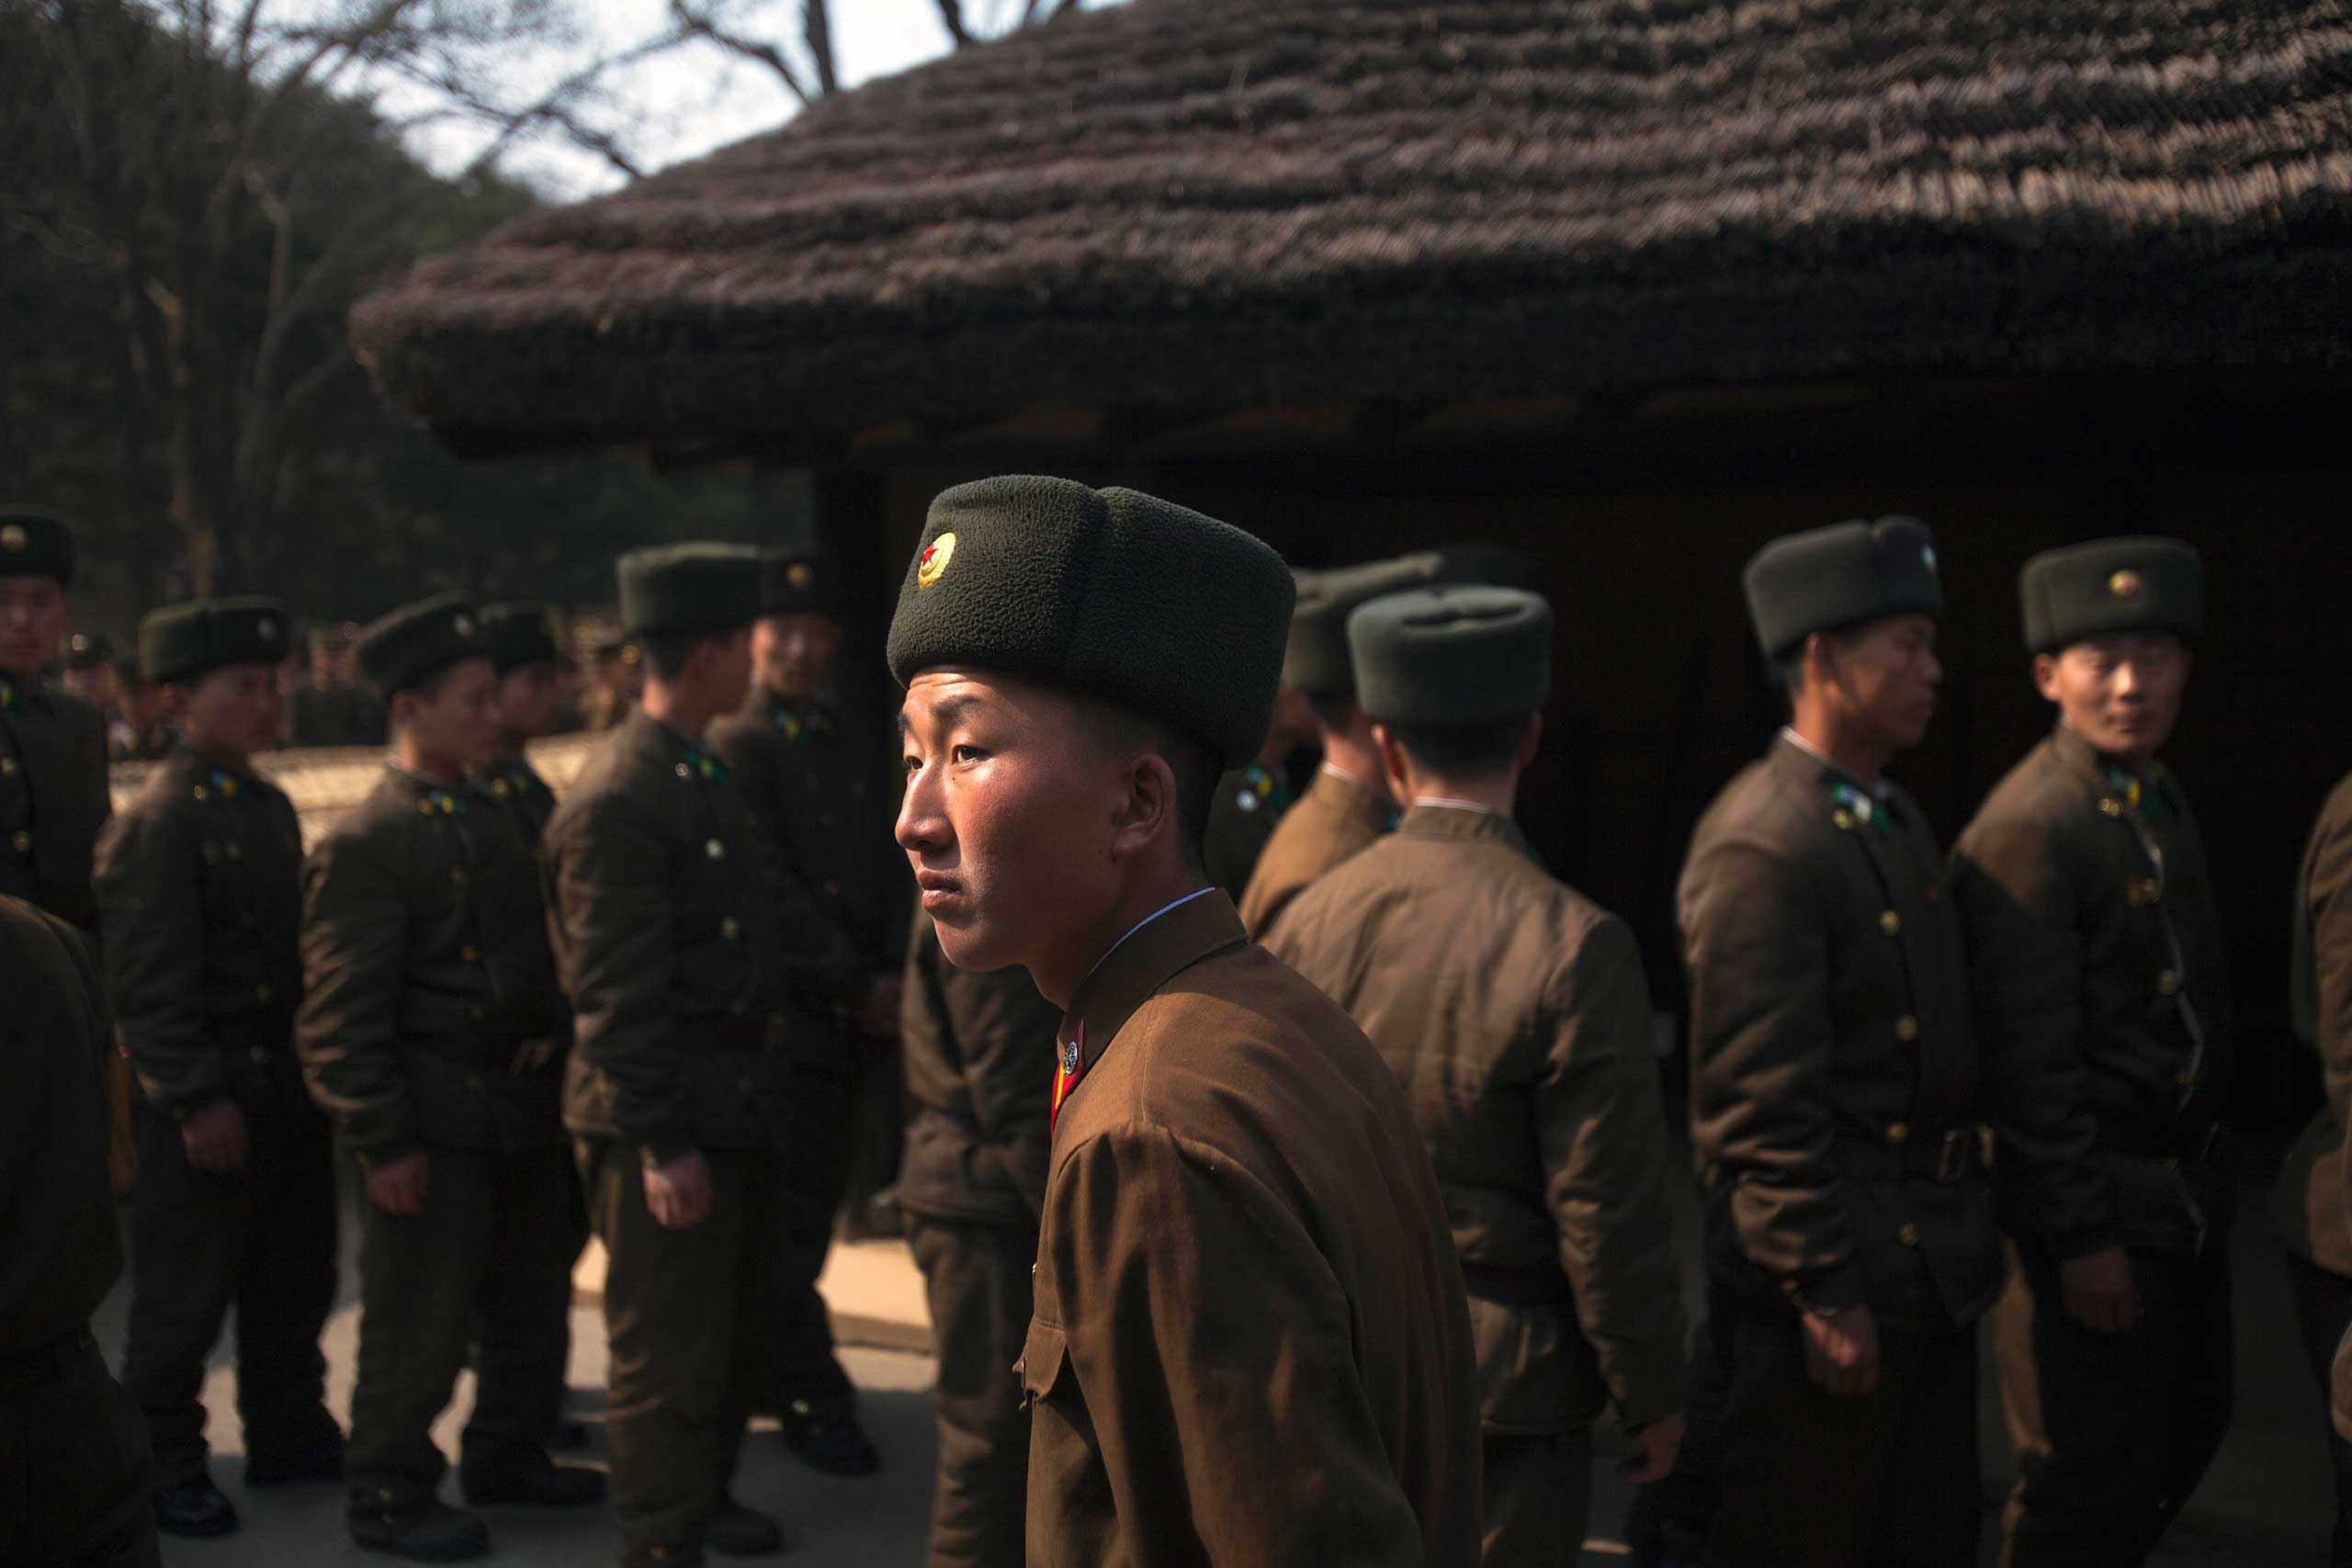 April 13, 2011. North Korean soldiers tour the grounds of the birthplace of the late President Kim Il-Sung at Mangyongdae, North Korea.